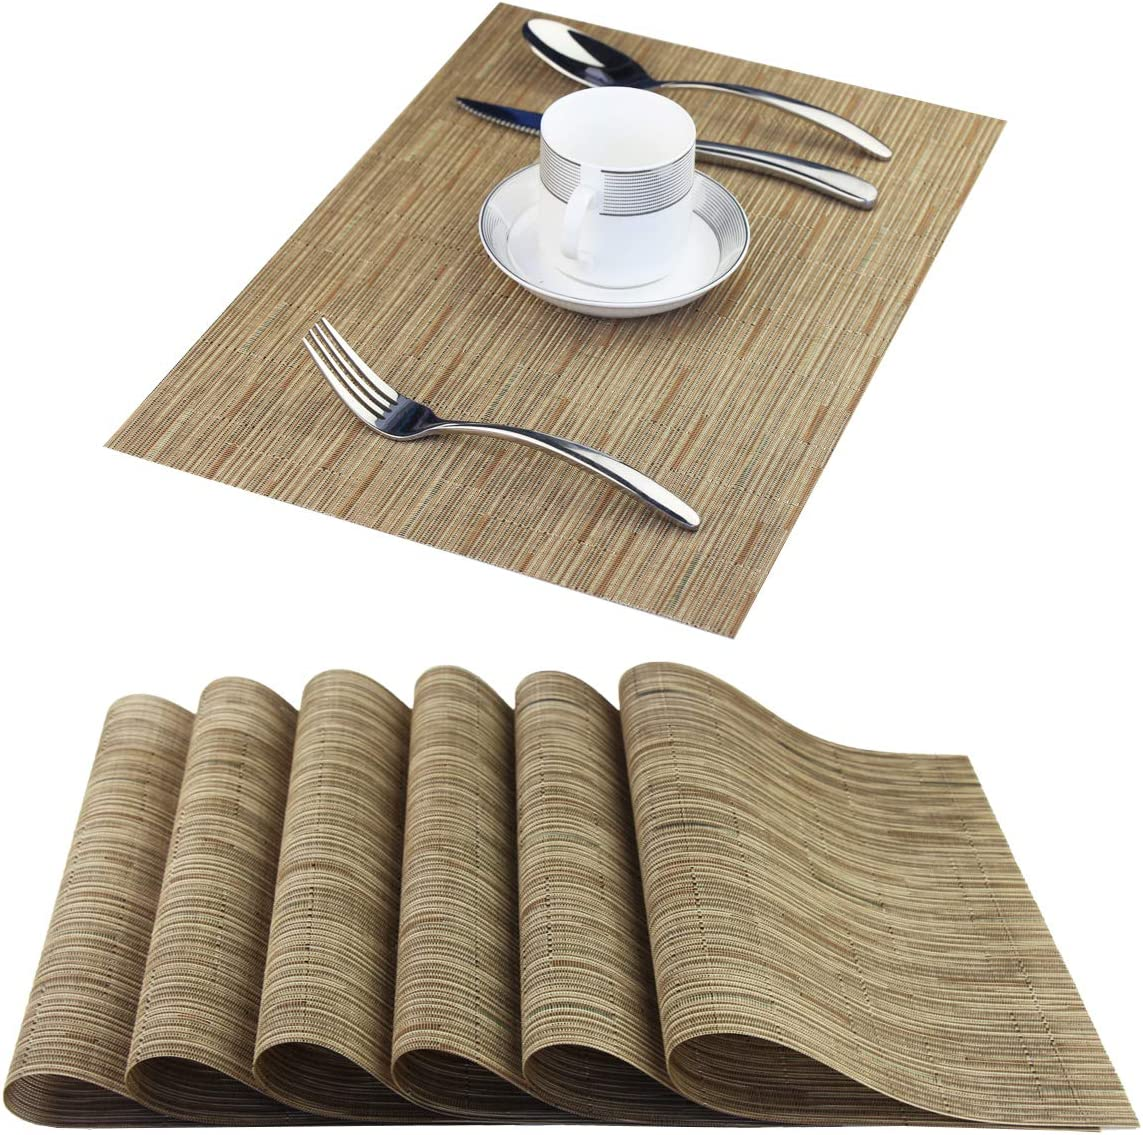 BeChen Placemats,Washable Woven Vinyl Placemats for Dining Table,Easy to Clean Plastic Placemats, Set of 6(Dark Beige)